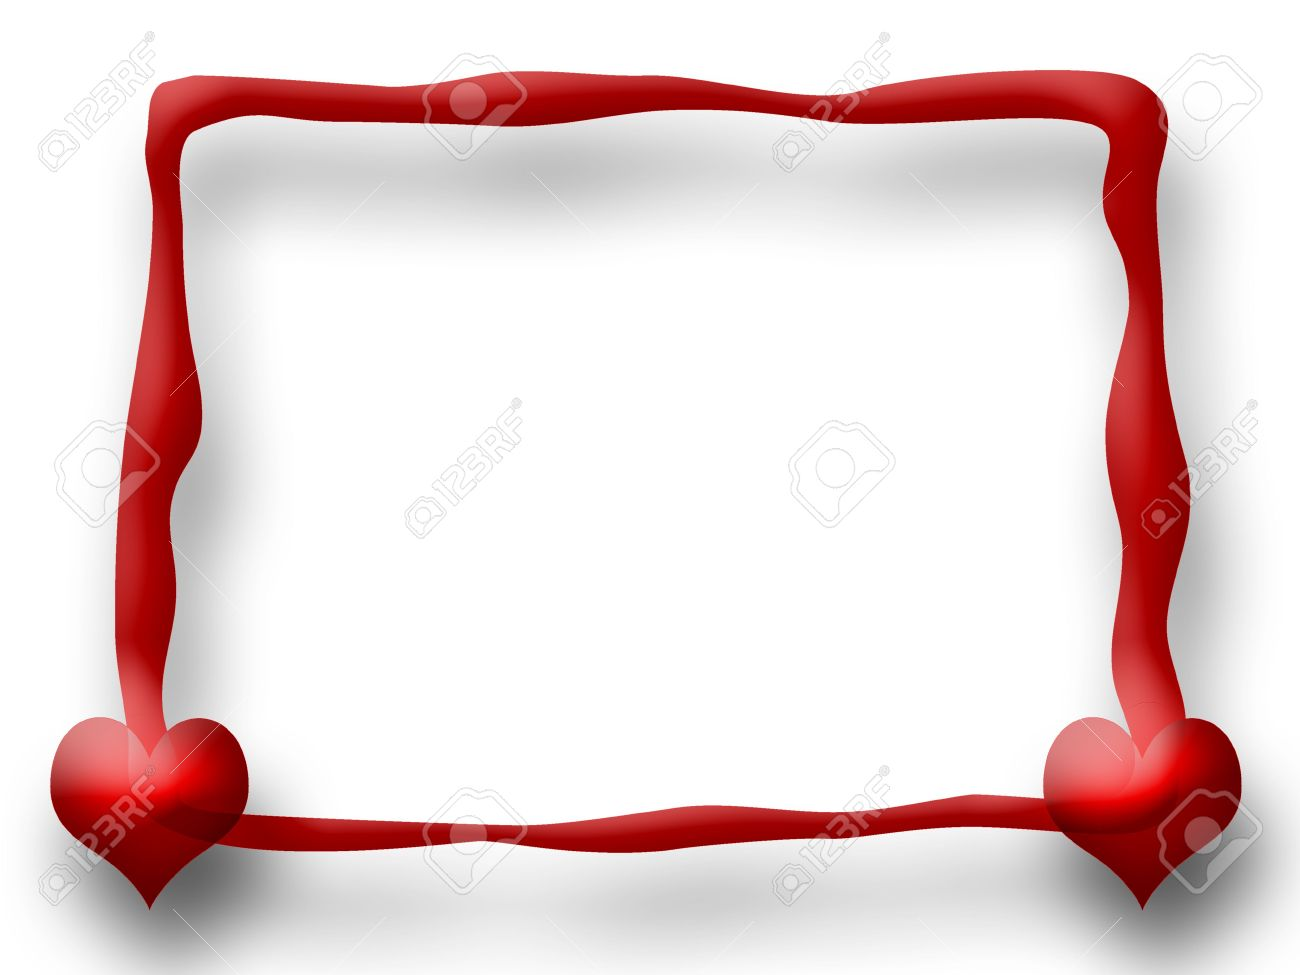 1300x975 Heart Frames For Pictures Image Collections